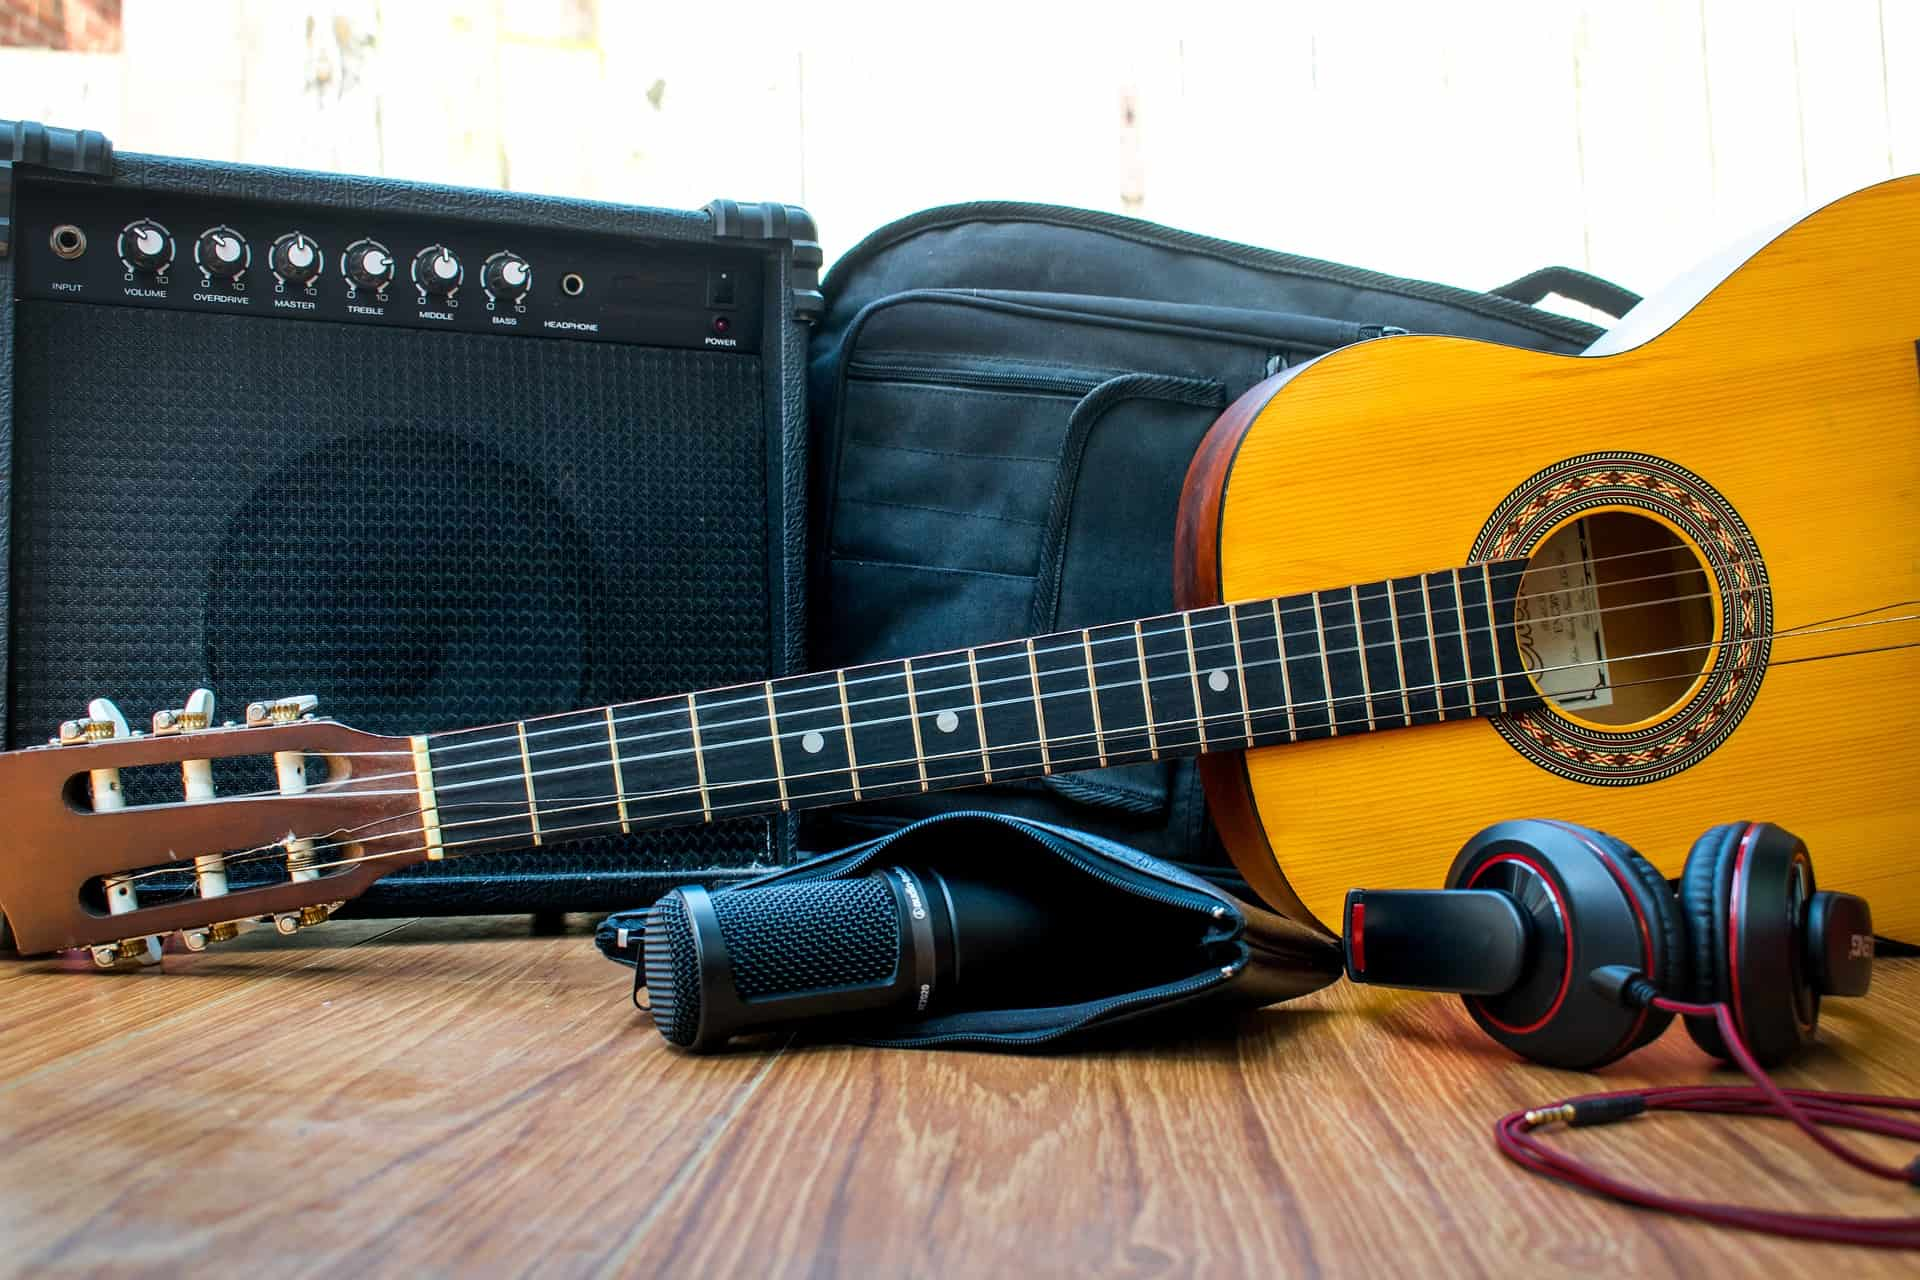 A guitar case next to an amplifier and behind a guitar.